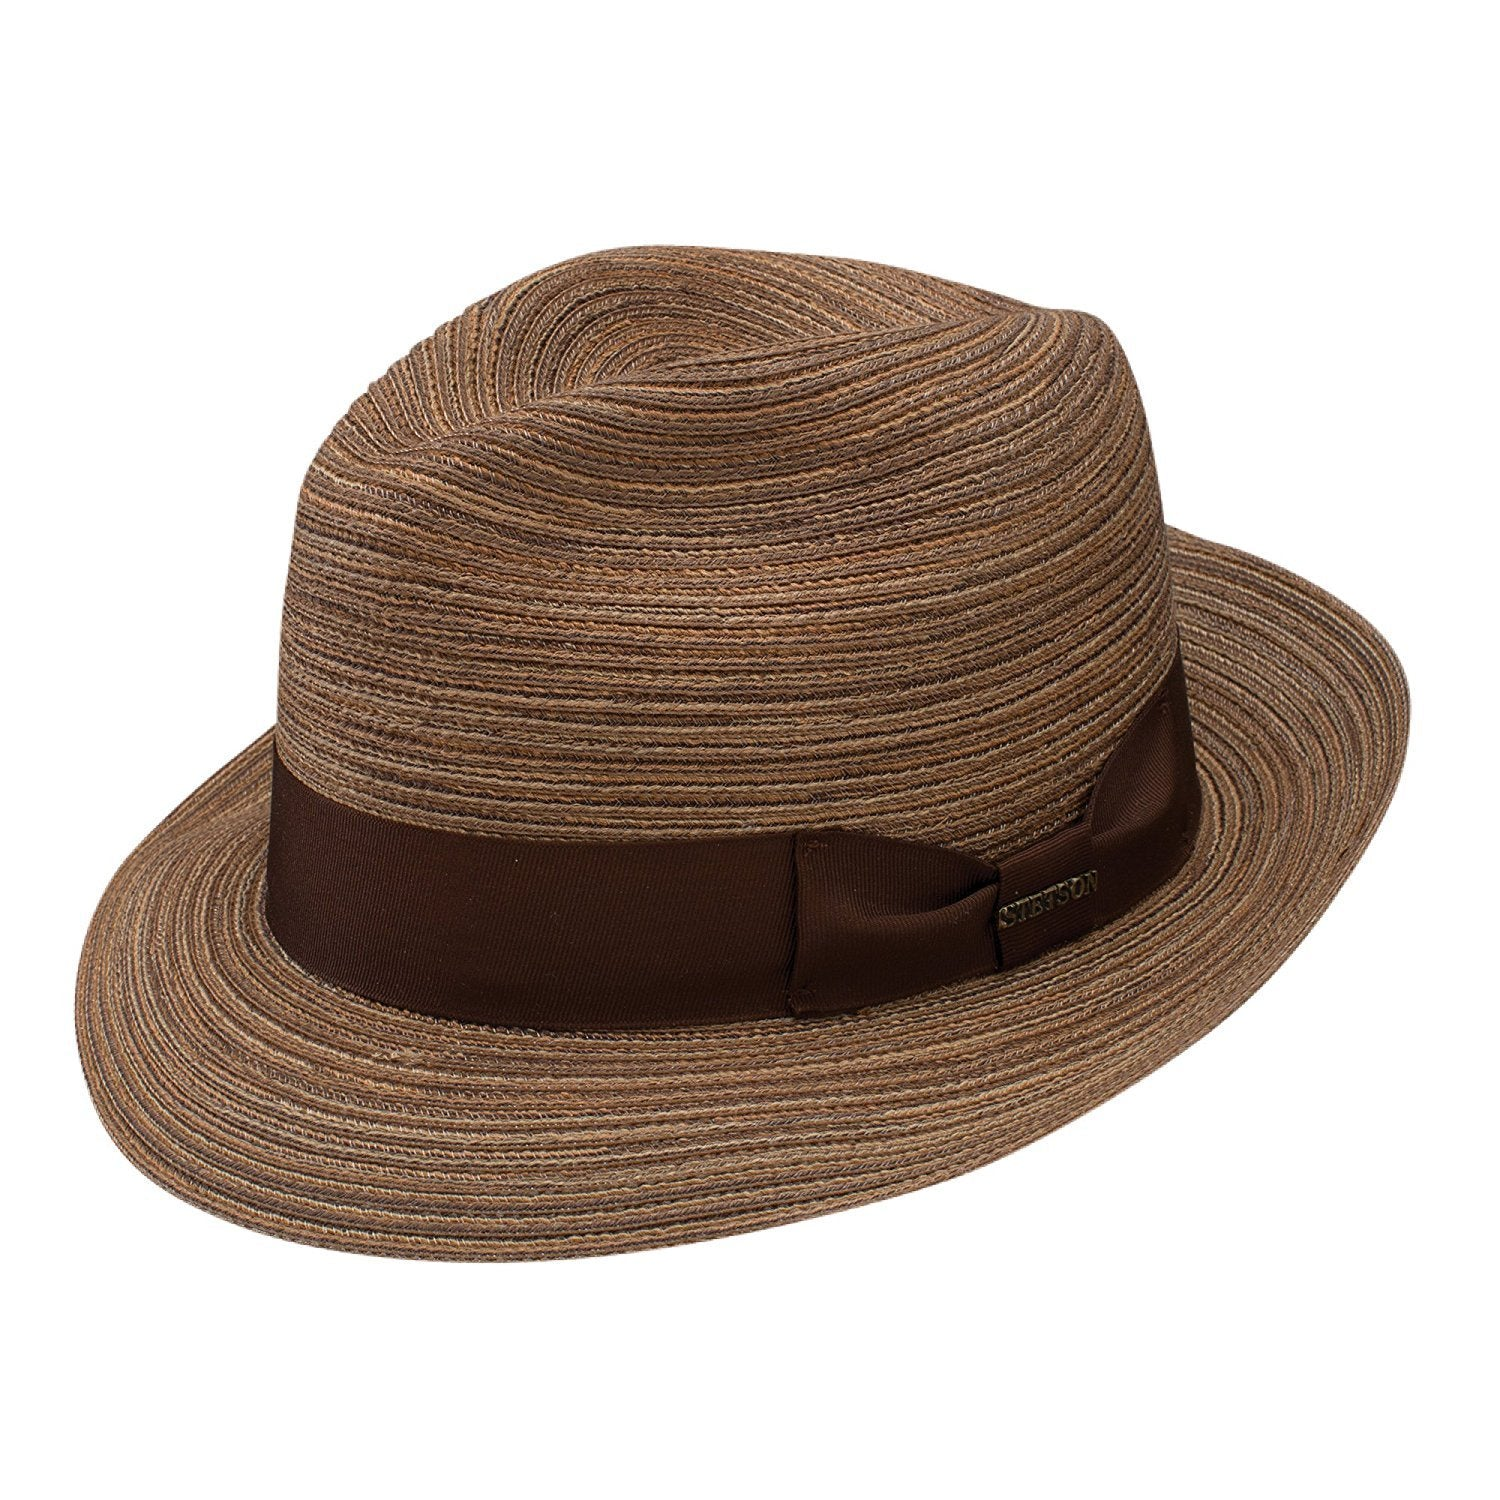 Regatta Cotton Braid Fedora Hat - Brown Hat - Dapperfam.com